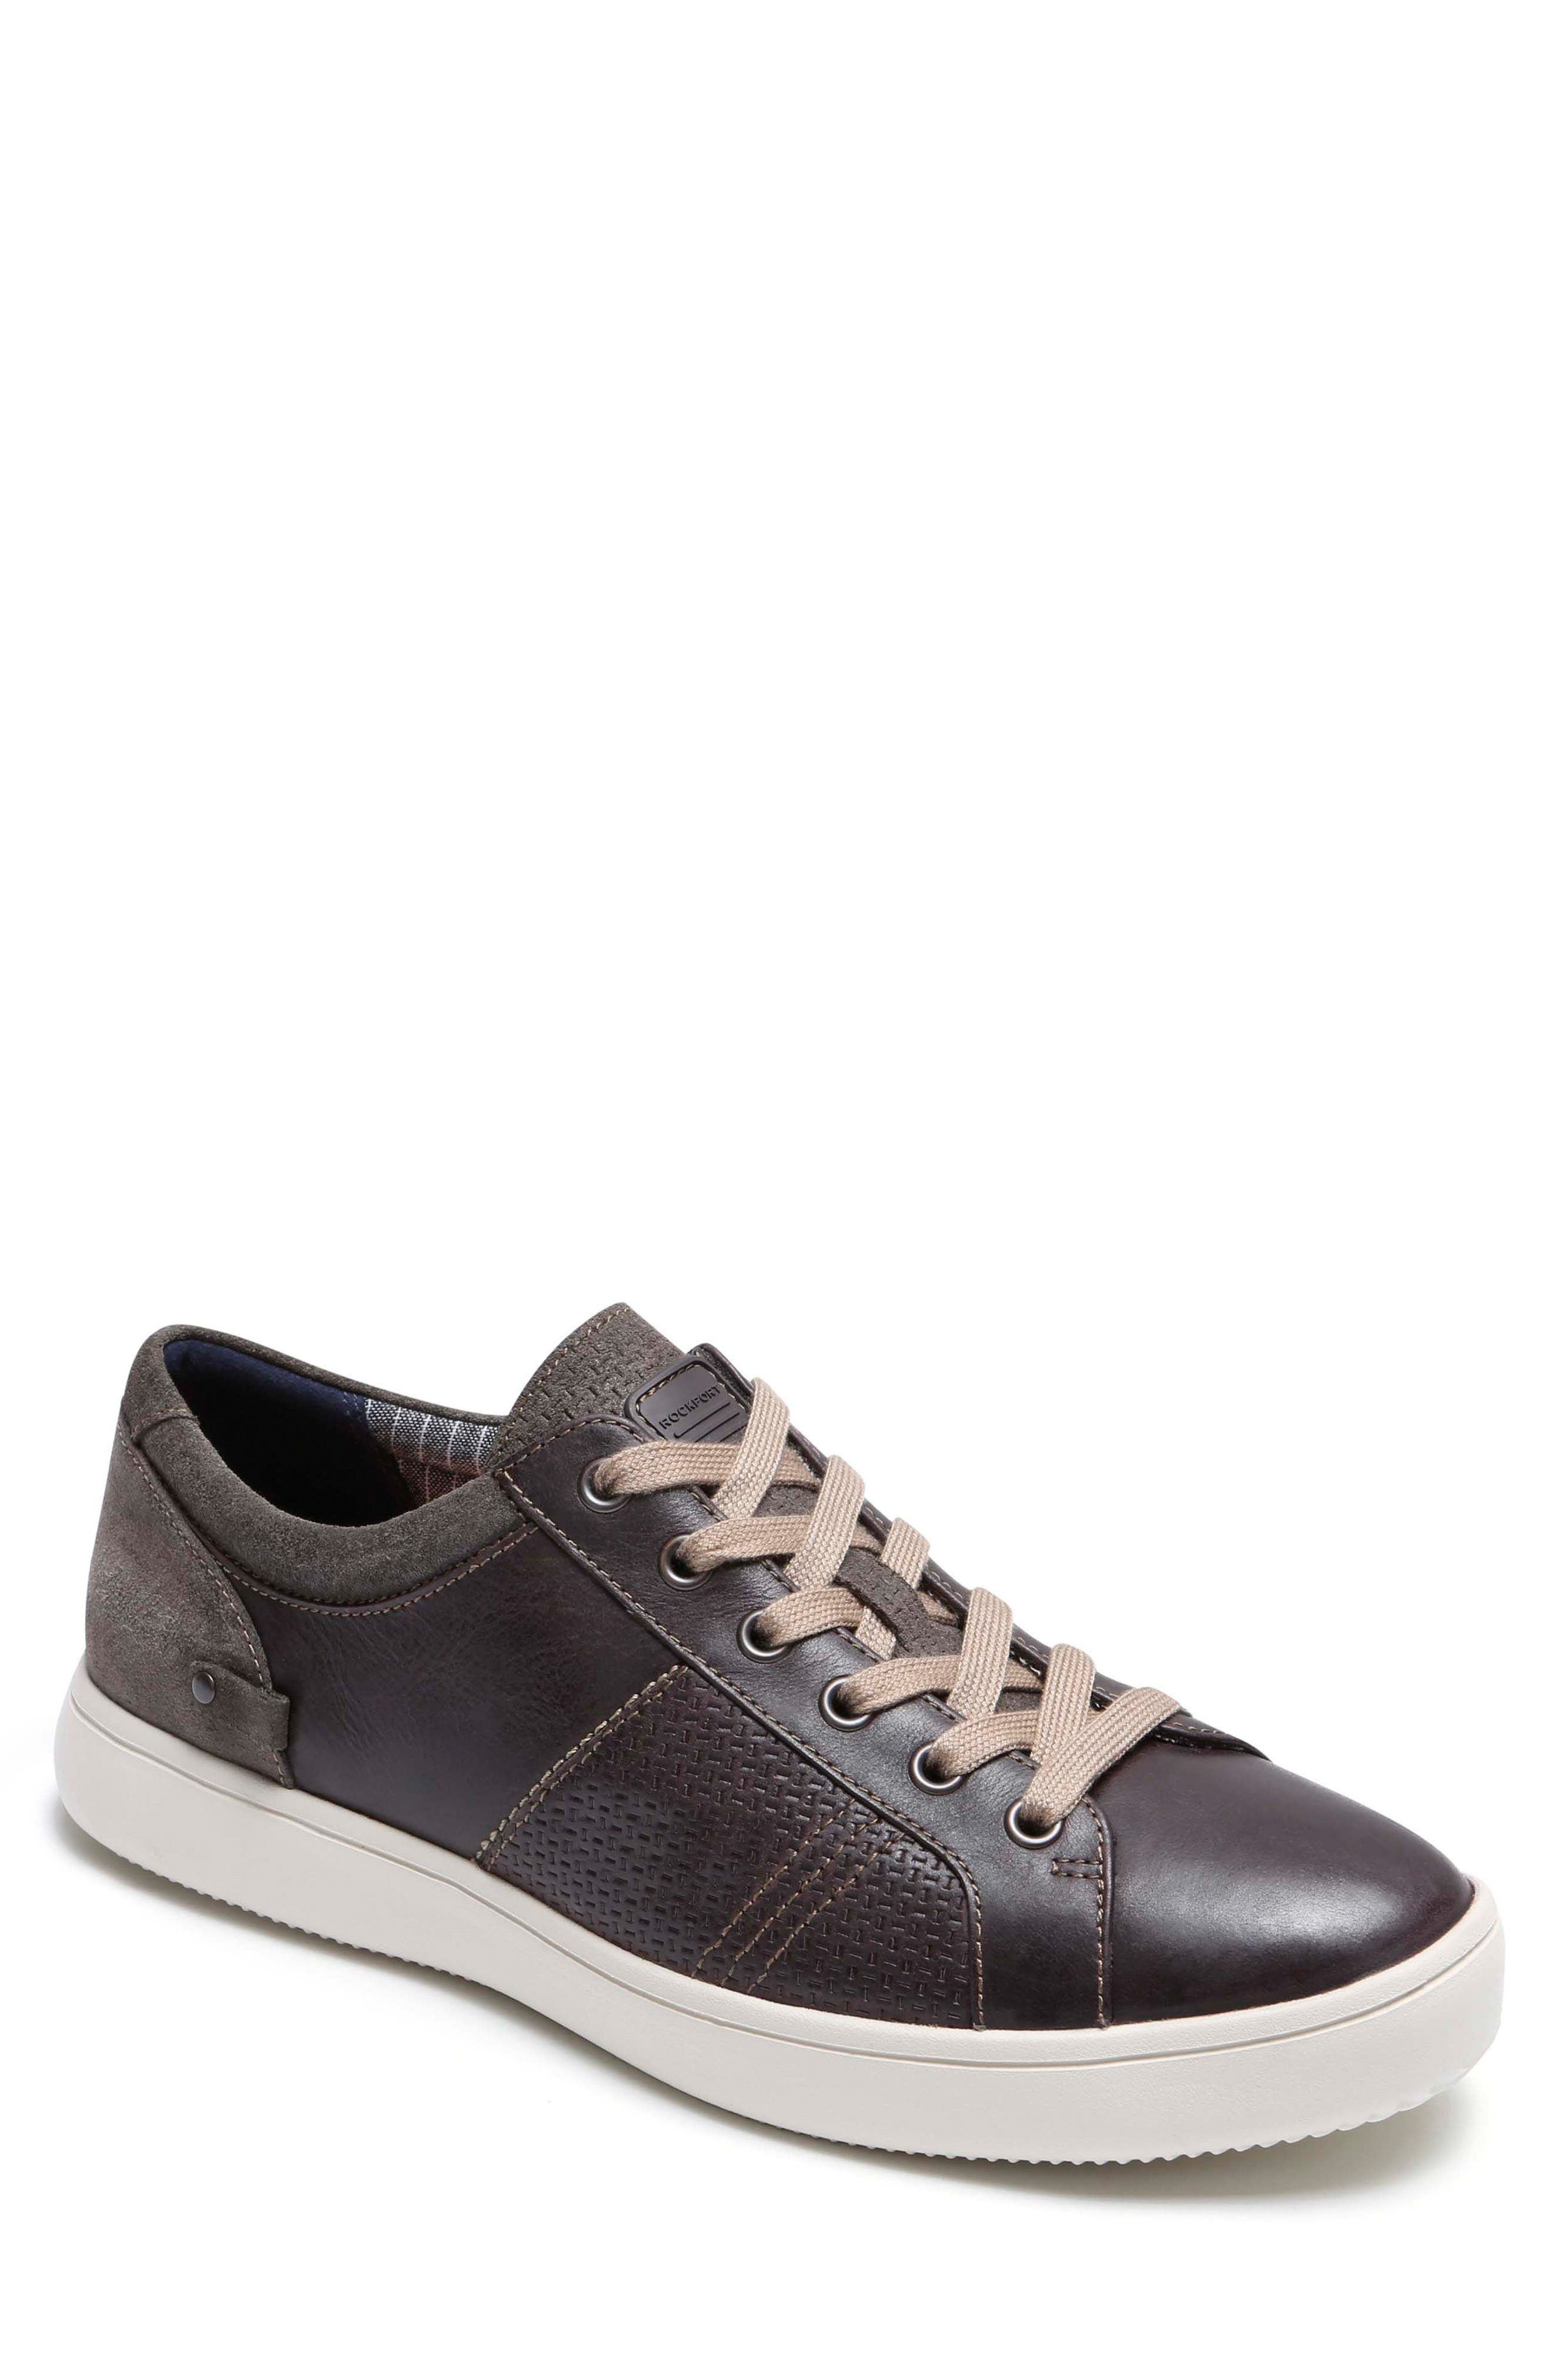 Colle Textured Sneaker,                             Main thumbnail 1, color,                             Coffee Leather